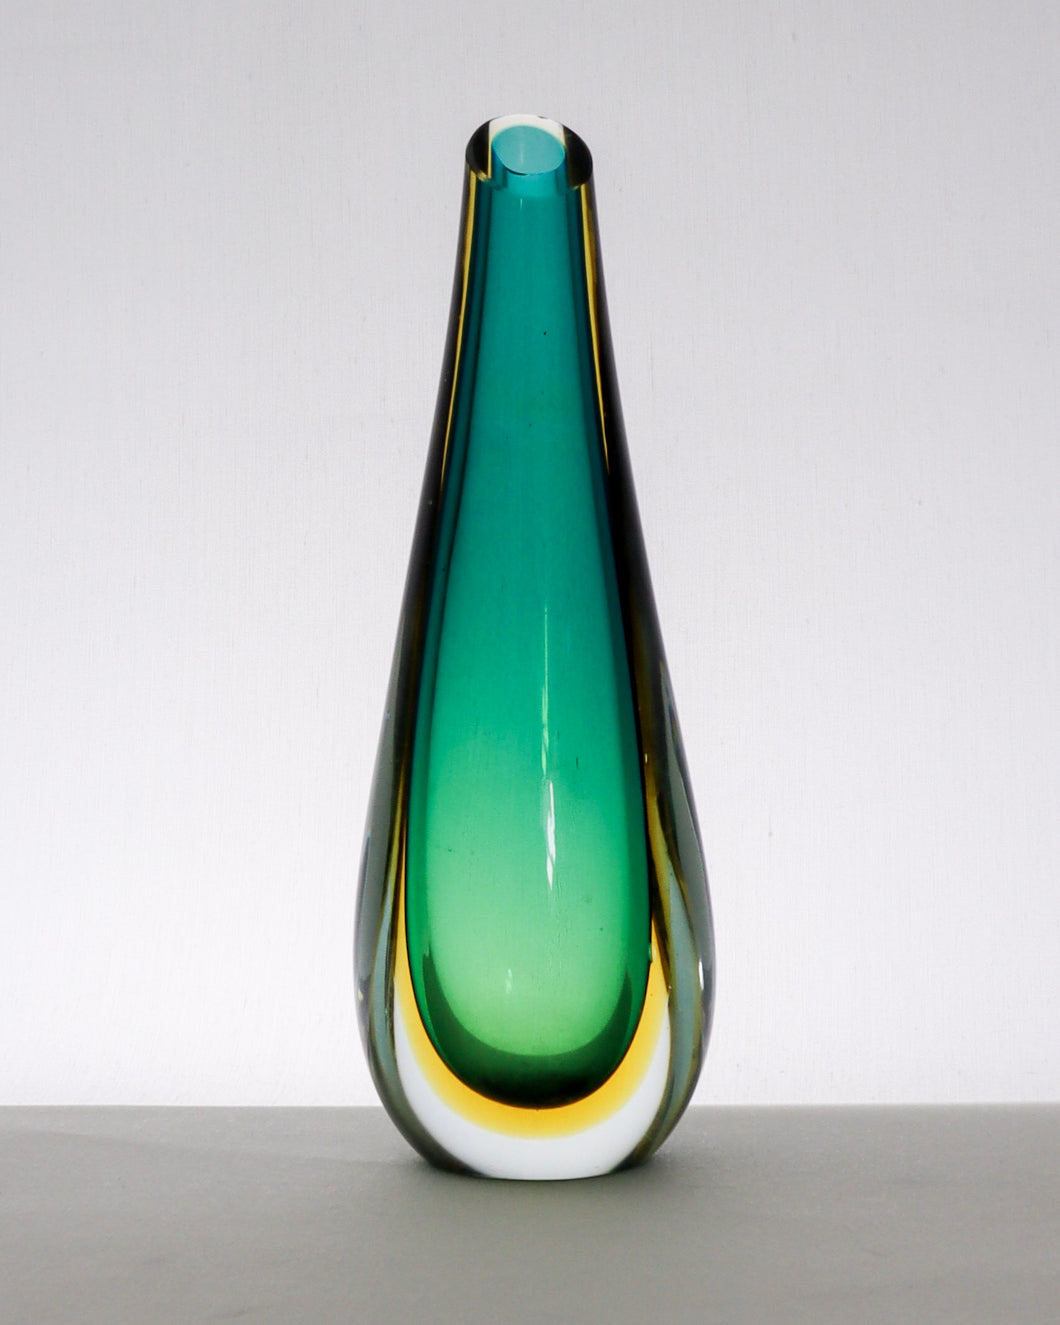 Wonderful teardrop stem vase